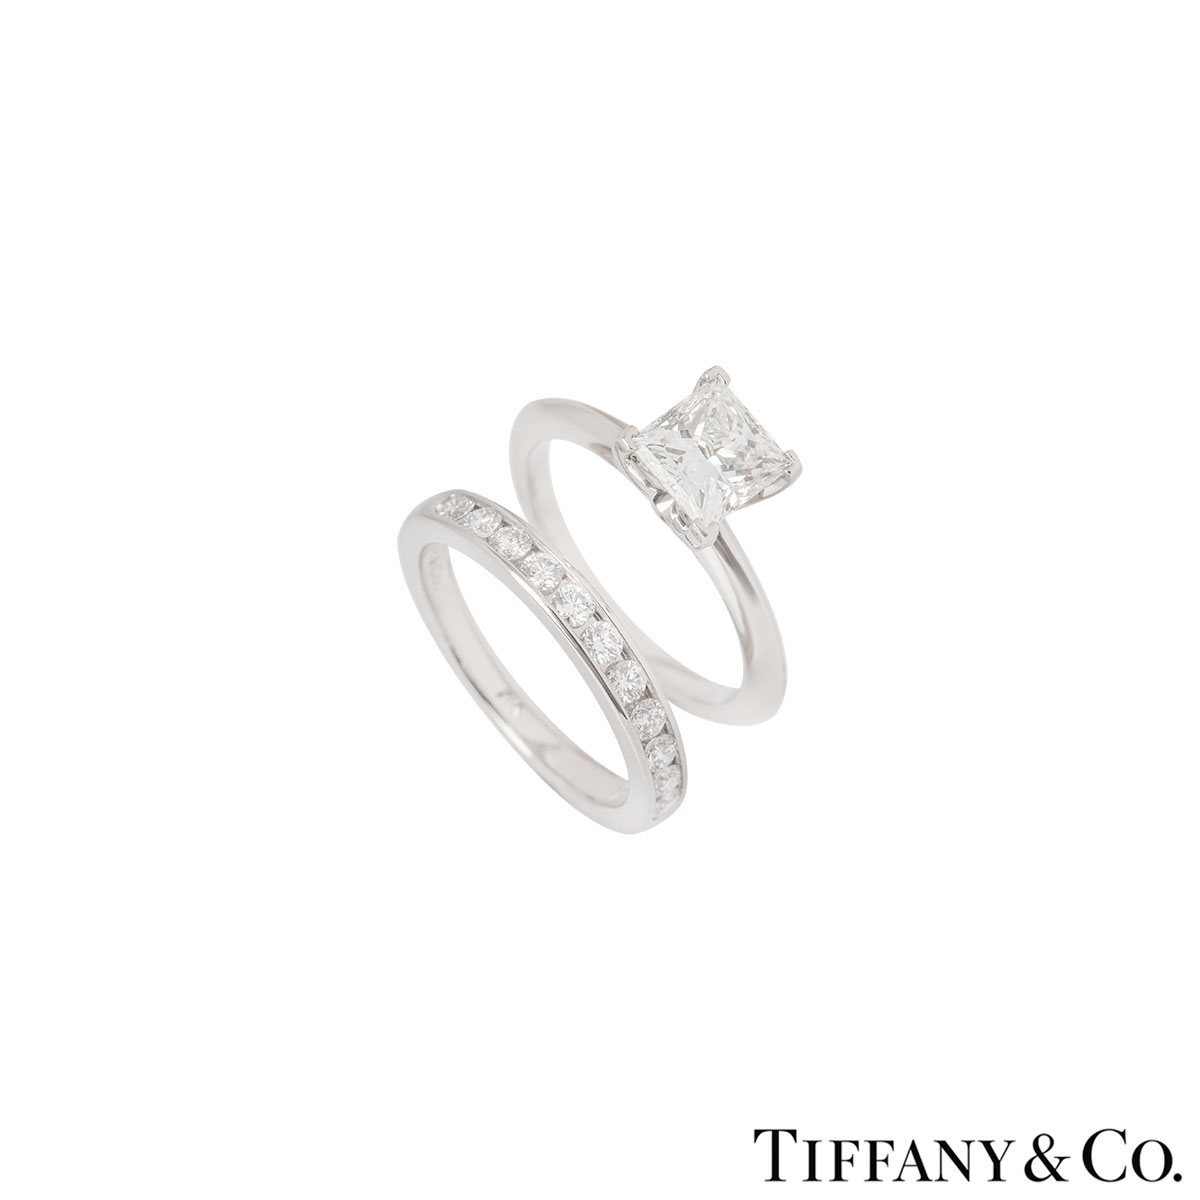 Tiffany & Co. Platinum Diamond Ring 1.28ct I/VS1 With Diamond Half Eternity Ring